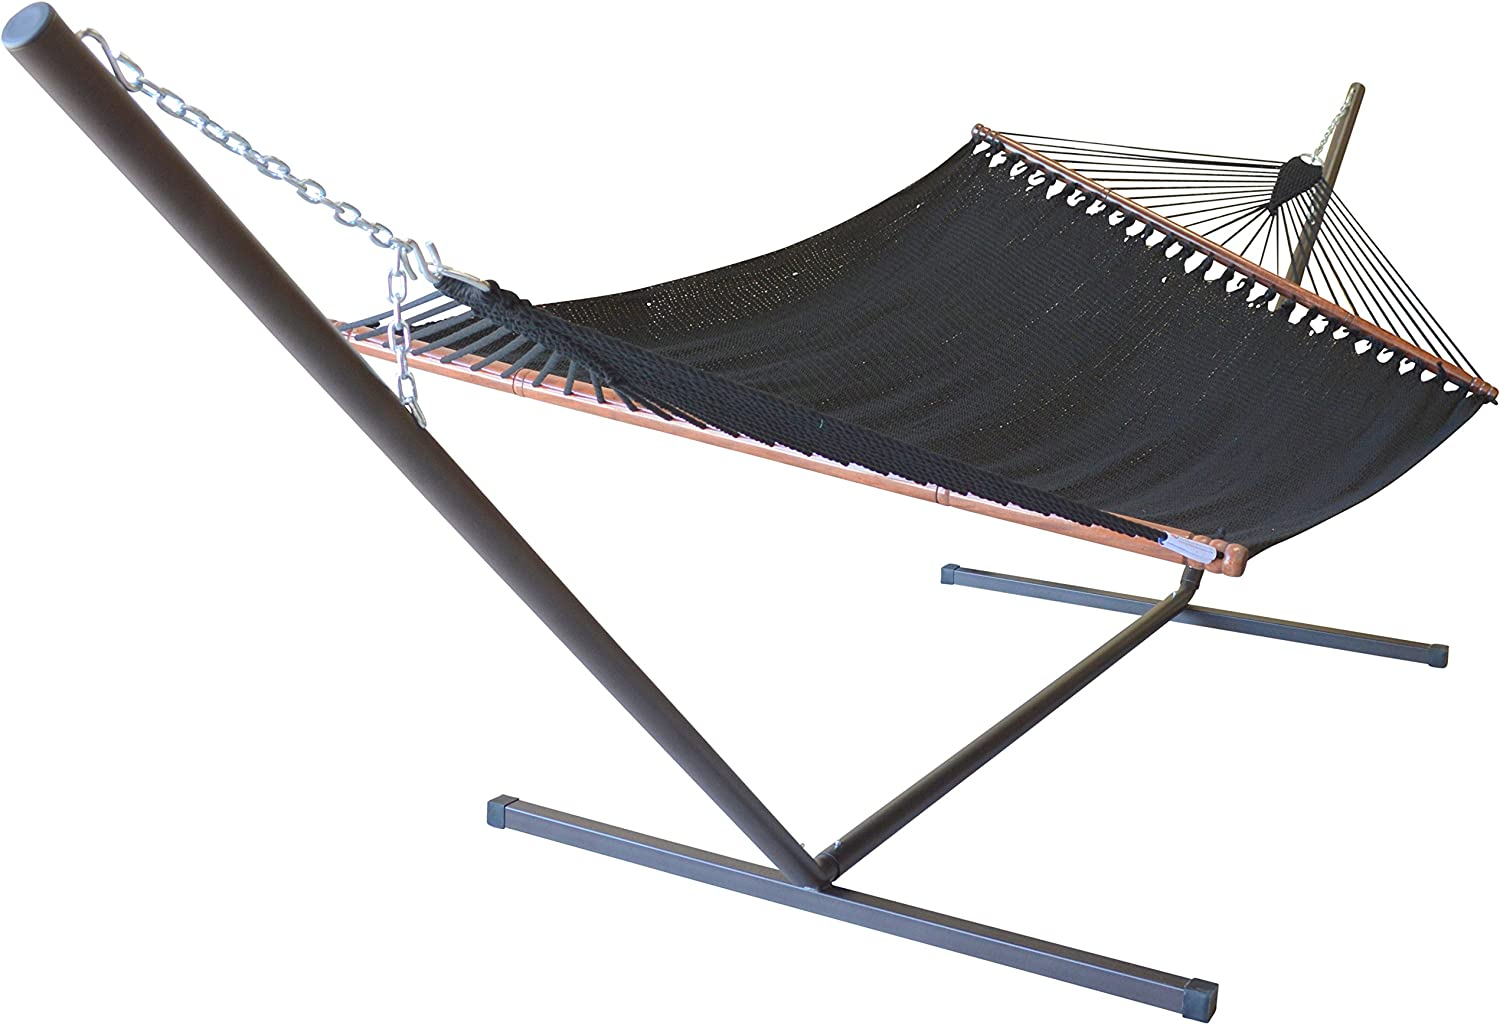 Caribbean Hammocks Jumbo Hammock and 15 ft Tribeam Stand - Black